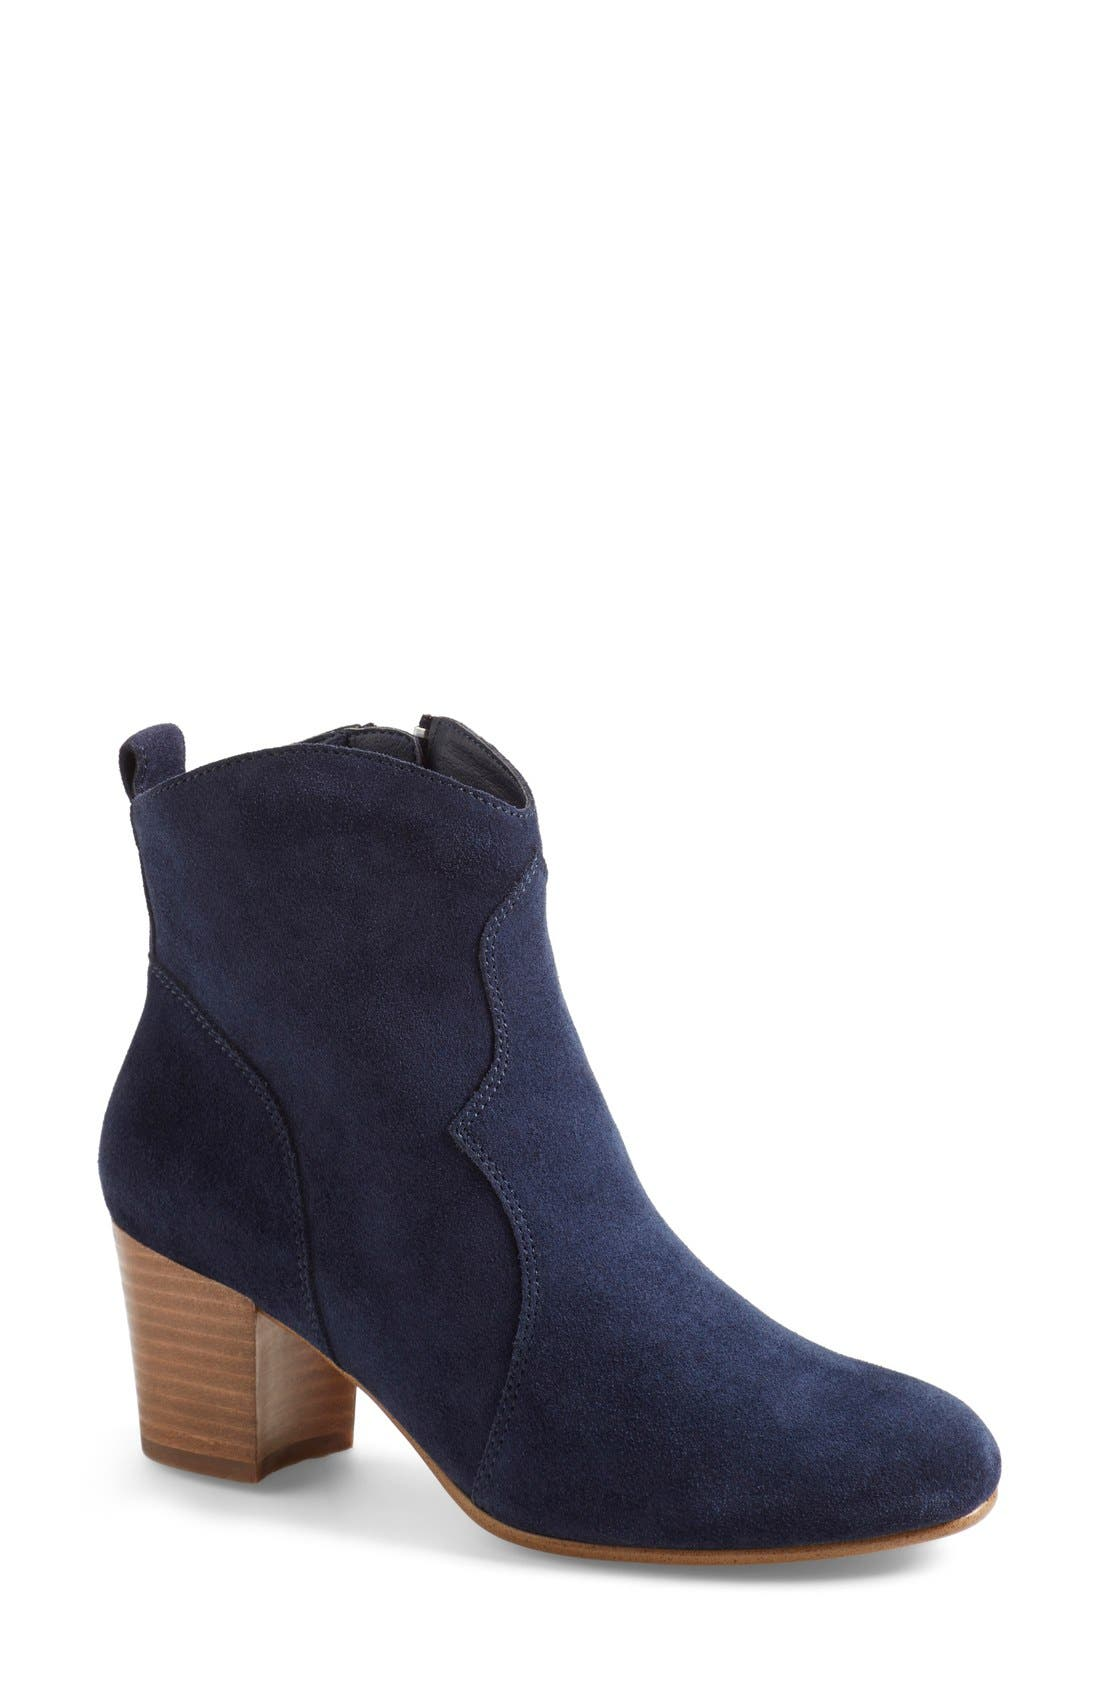 Alternate Image 1 Selected - Steve Madden 'Hipstr' Bootie (Women)